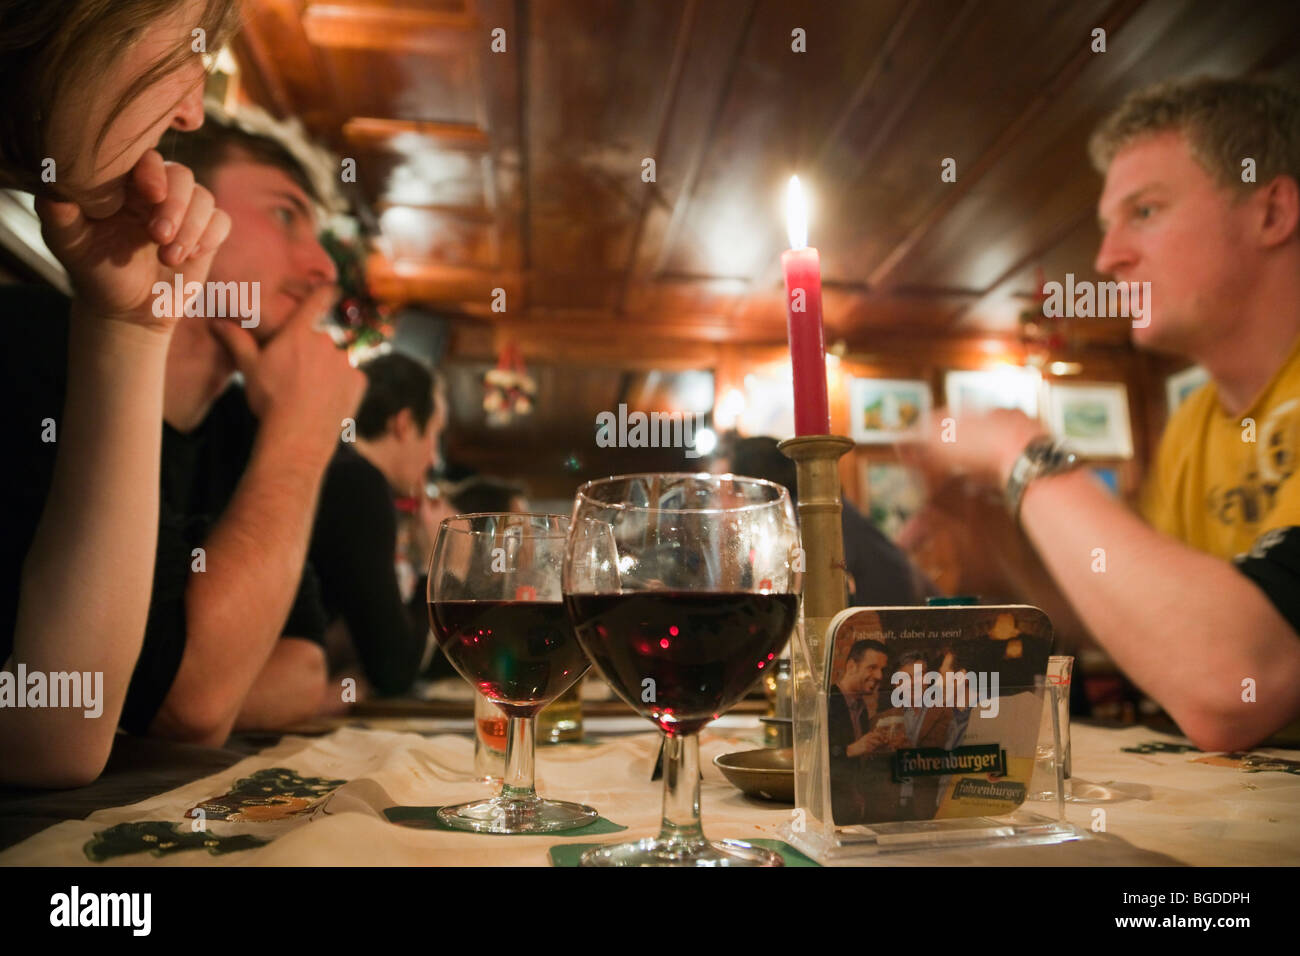 Everyday hygge scene of young people sat drinking wine around a table in a bar. Modern lifestyle. Austria, Europe. - Stock Image